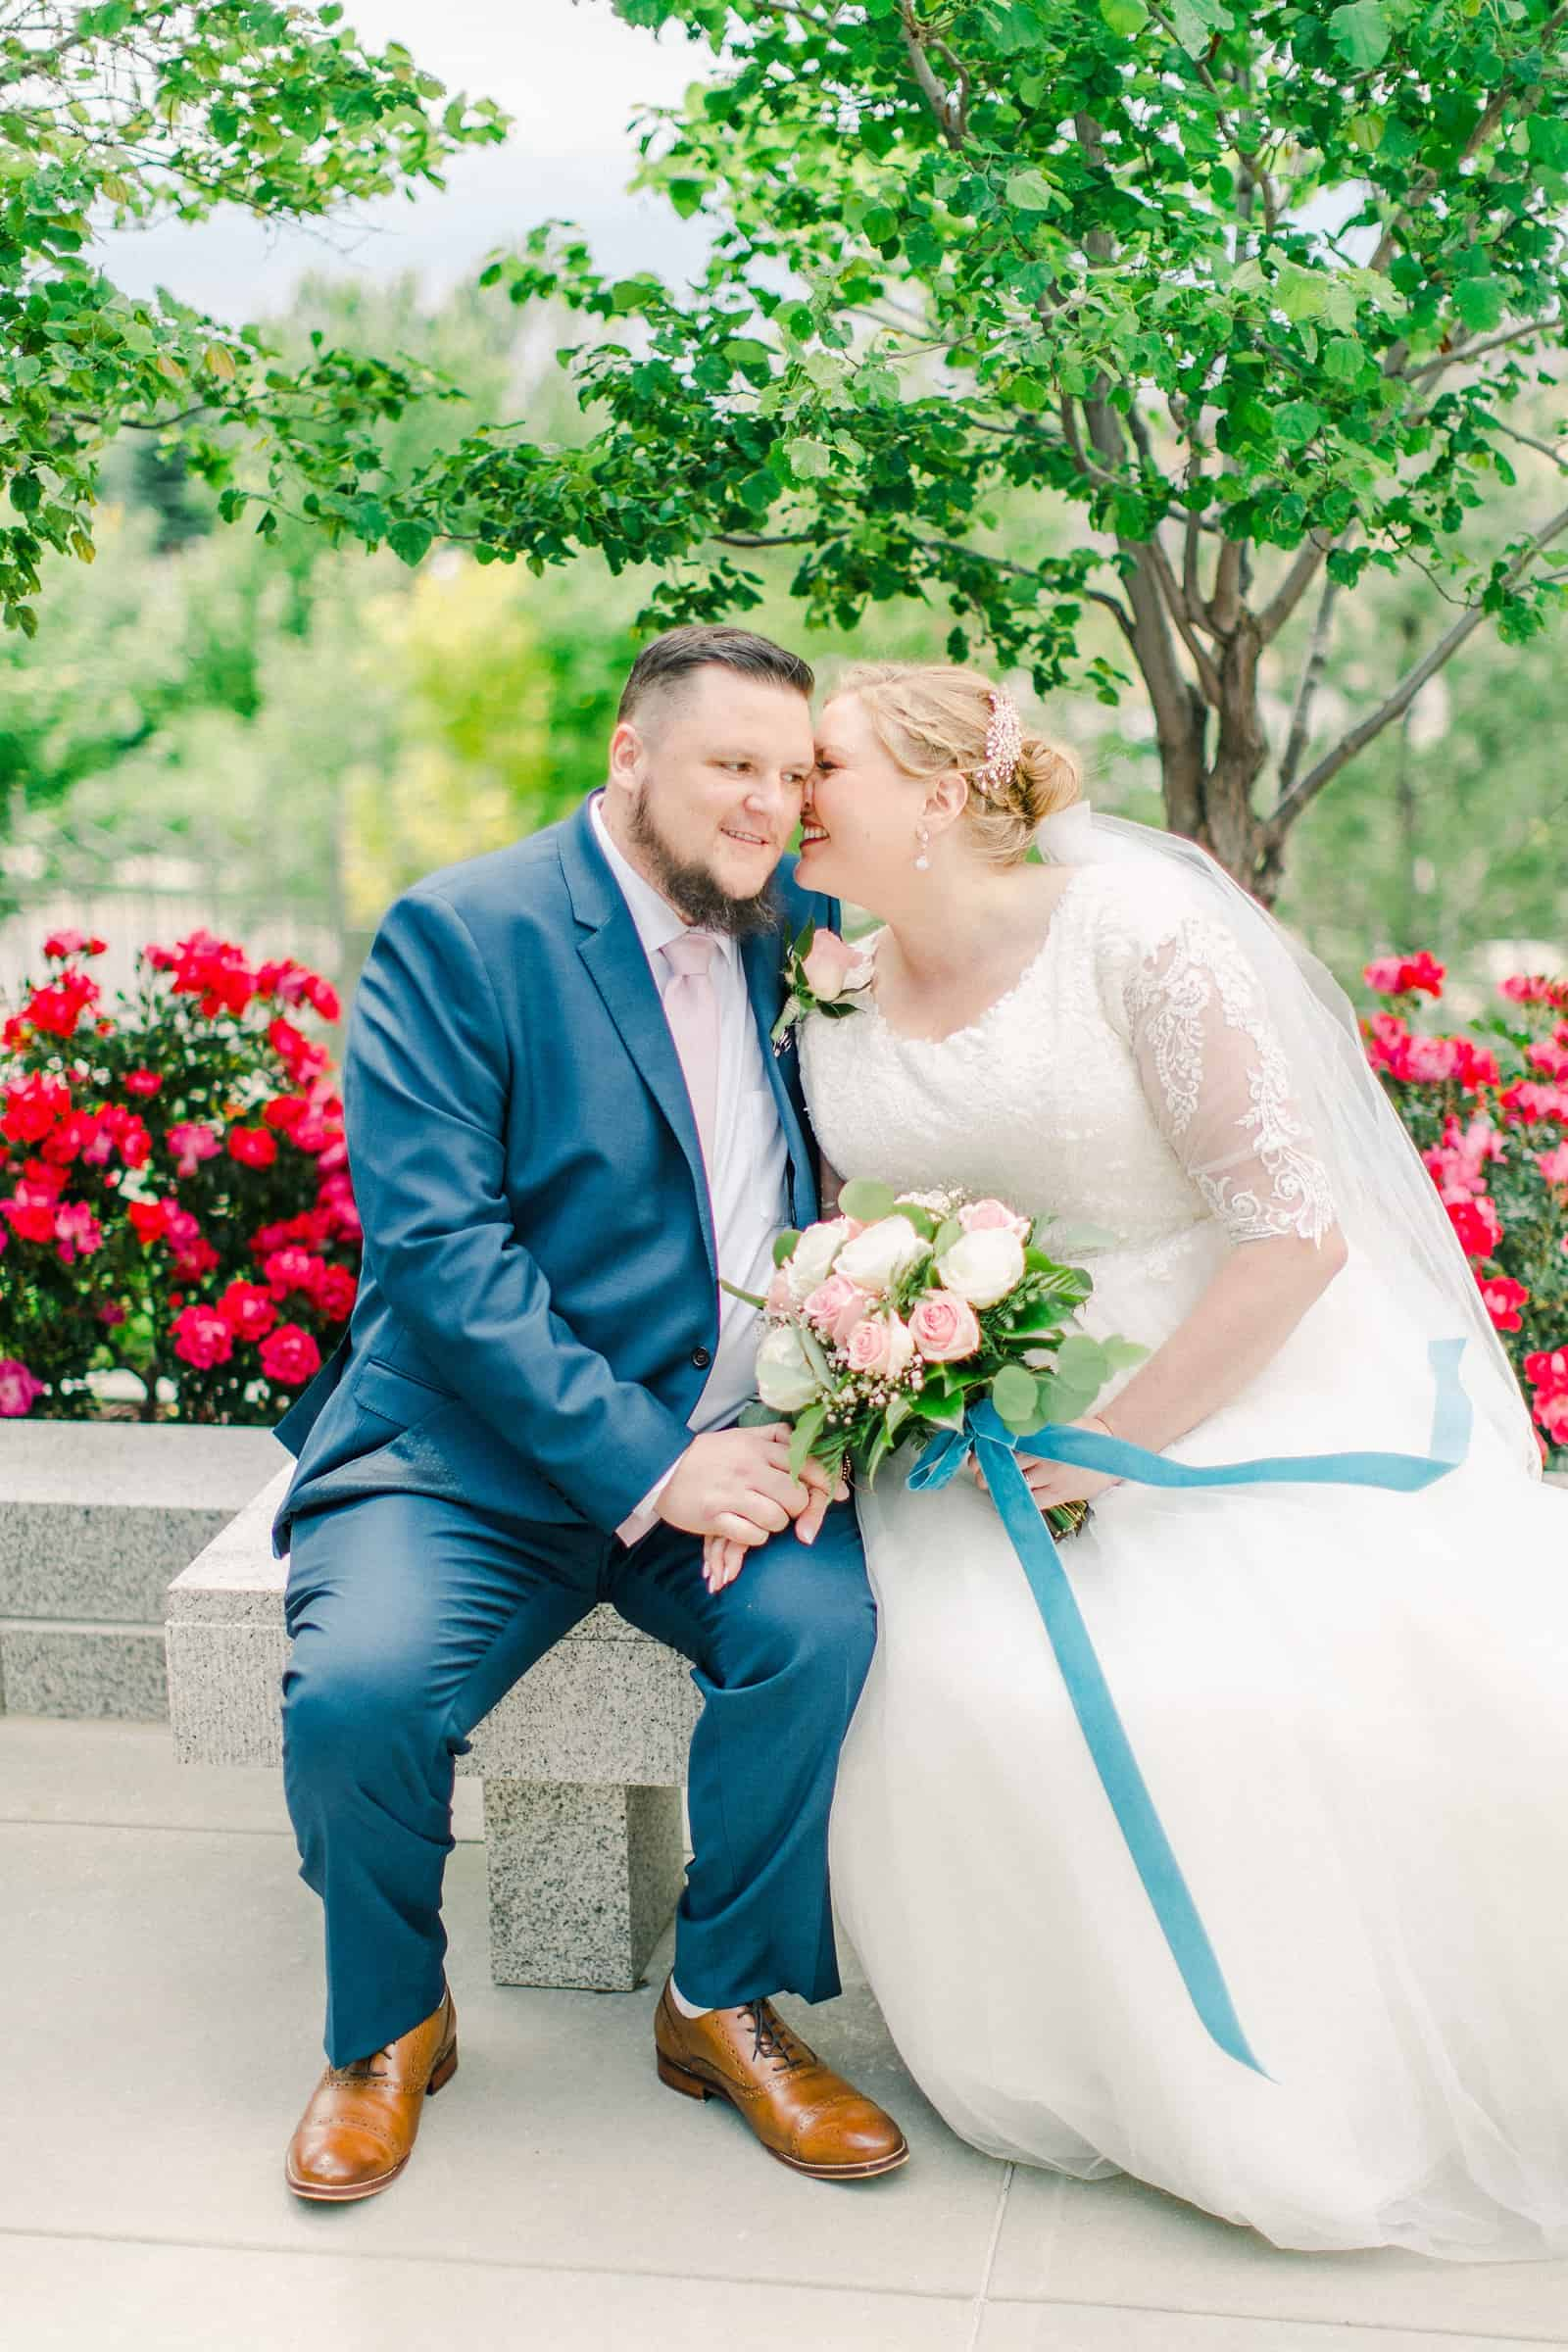 Draper LDS Temple Wedding, Utah wedding photography, summer backyard wedding, bride and groom, pink and rose bouquet with blue ribbon